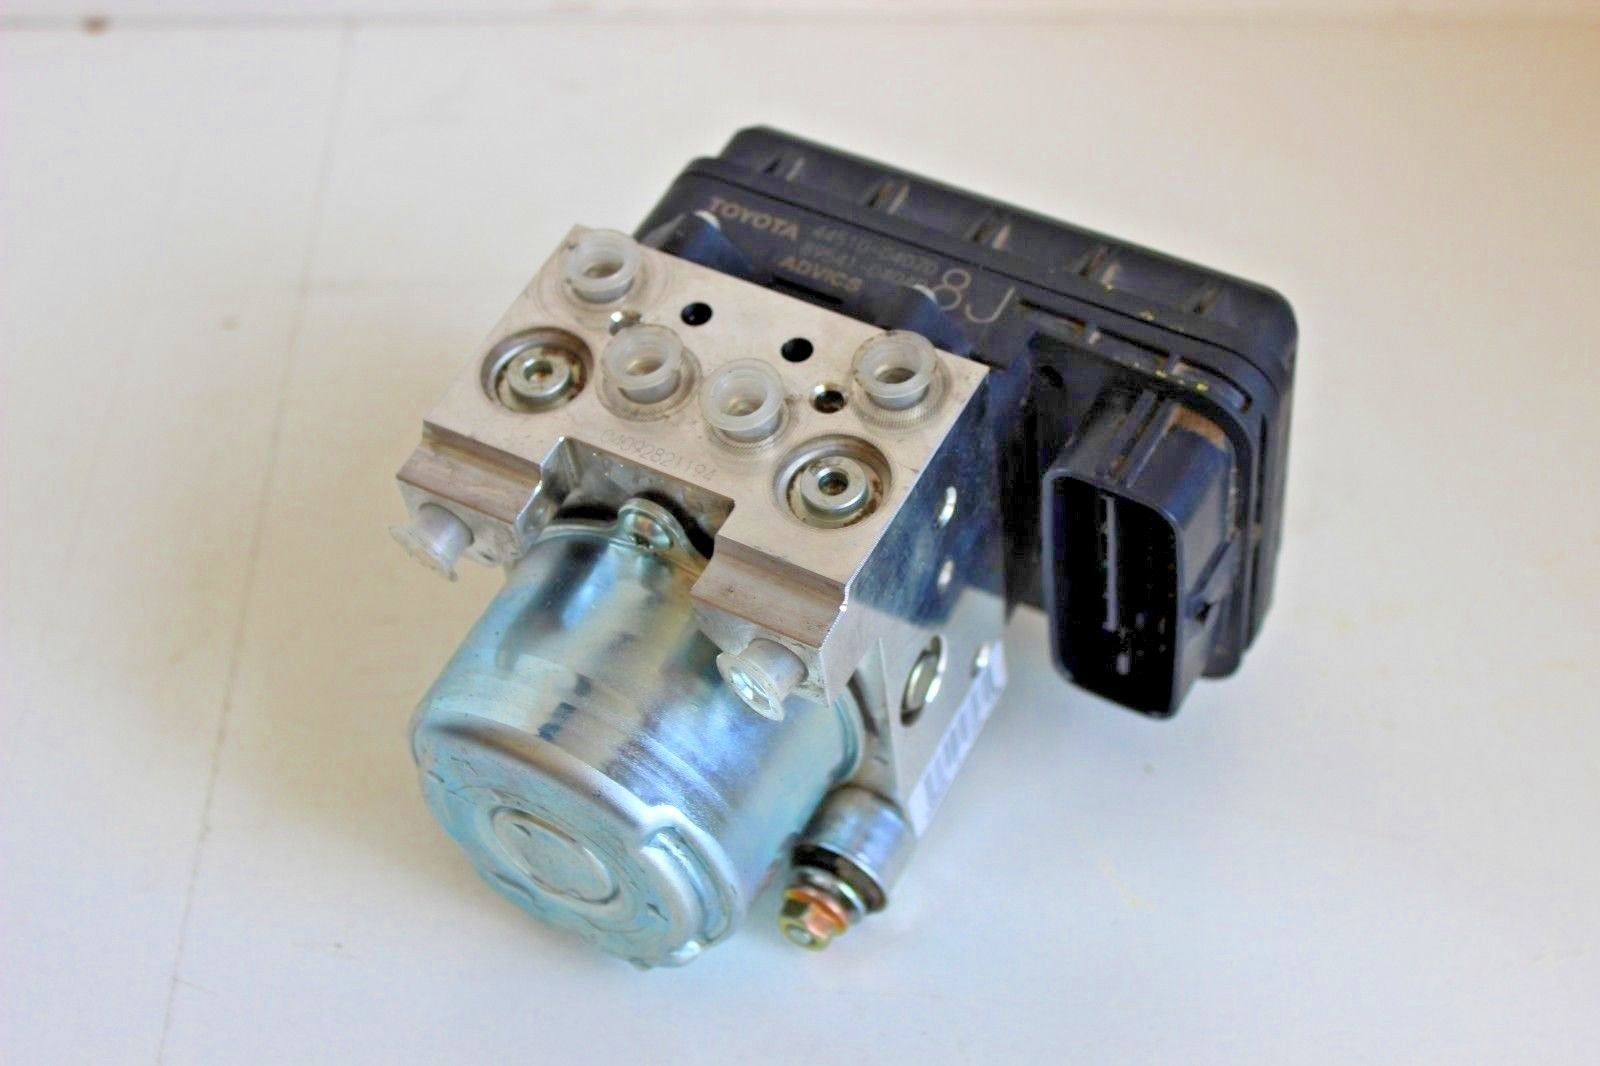 2005-2008 Toyota Tacoma 4x4 4WD Anti Lock Brake Actuator Pump Assembly 66k